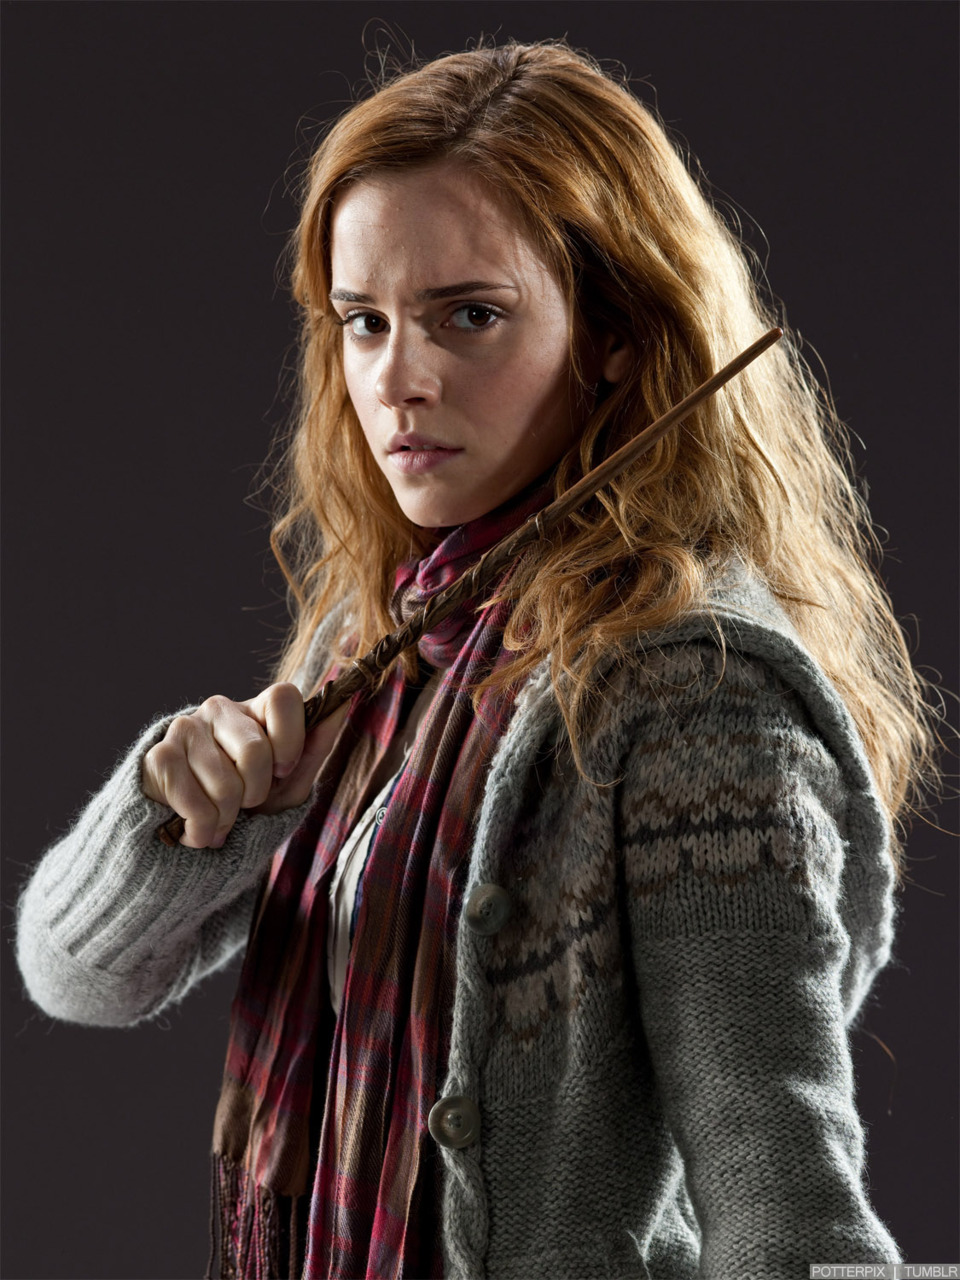 Emma watson updates new pictures of emma watson as hermione granger - Harry potter movies hermione granger ...